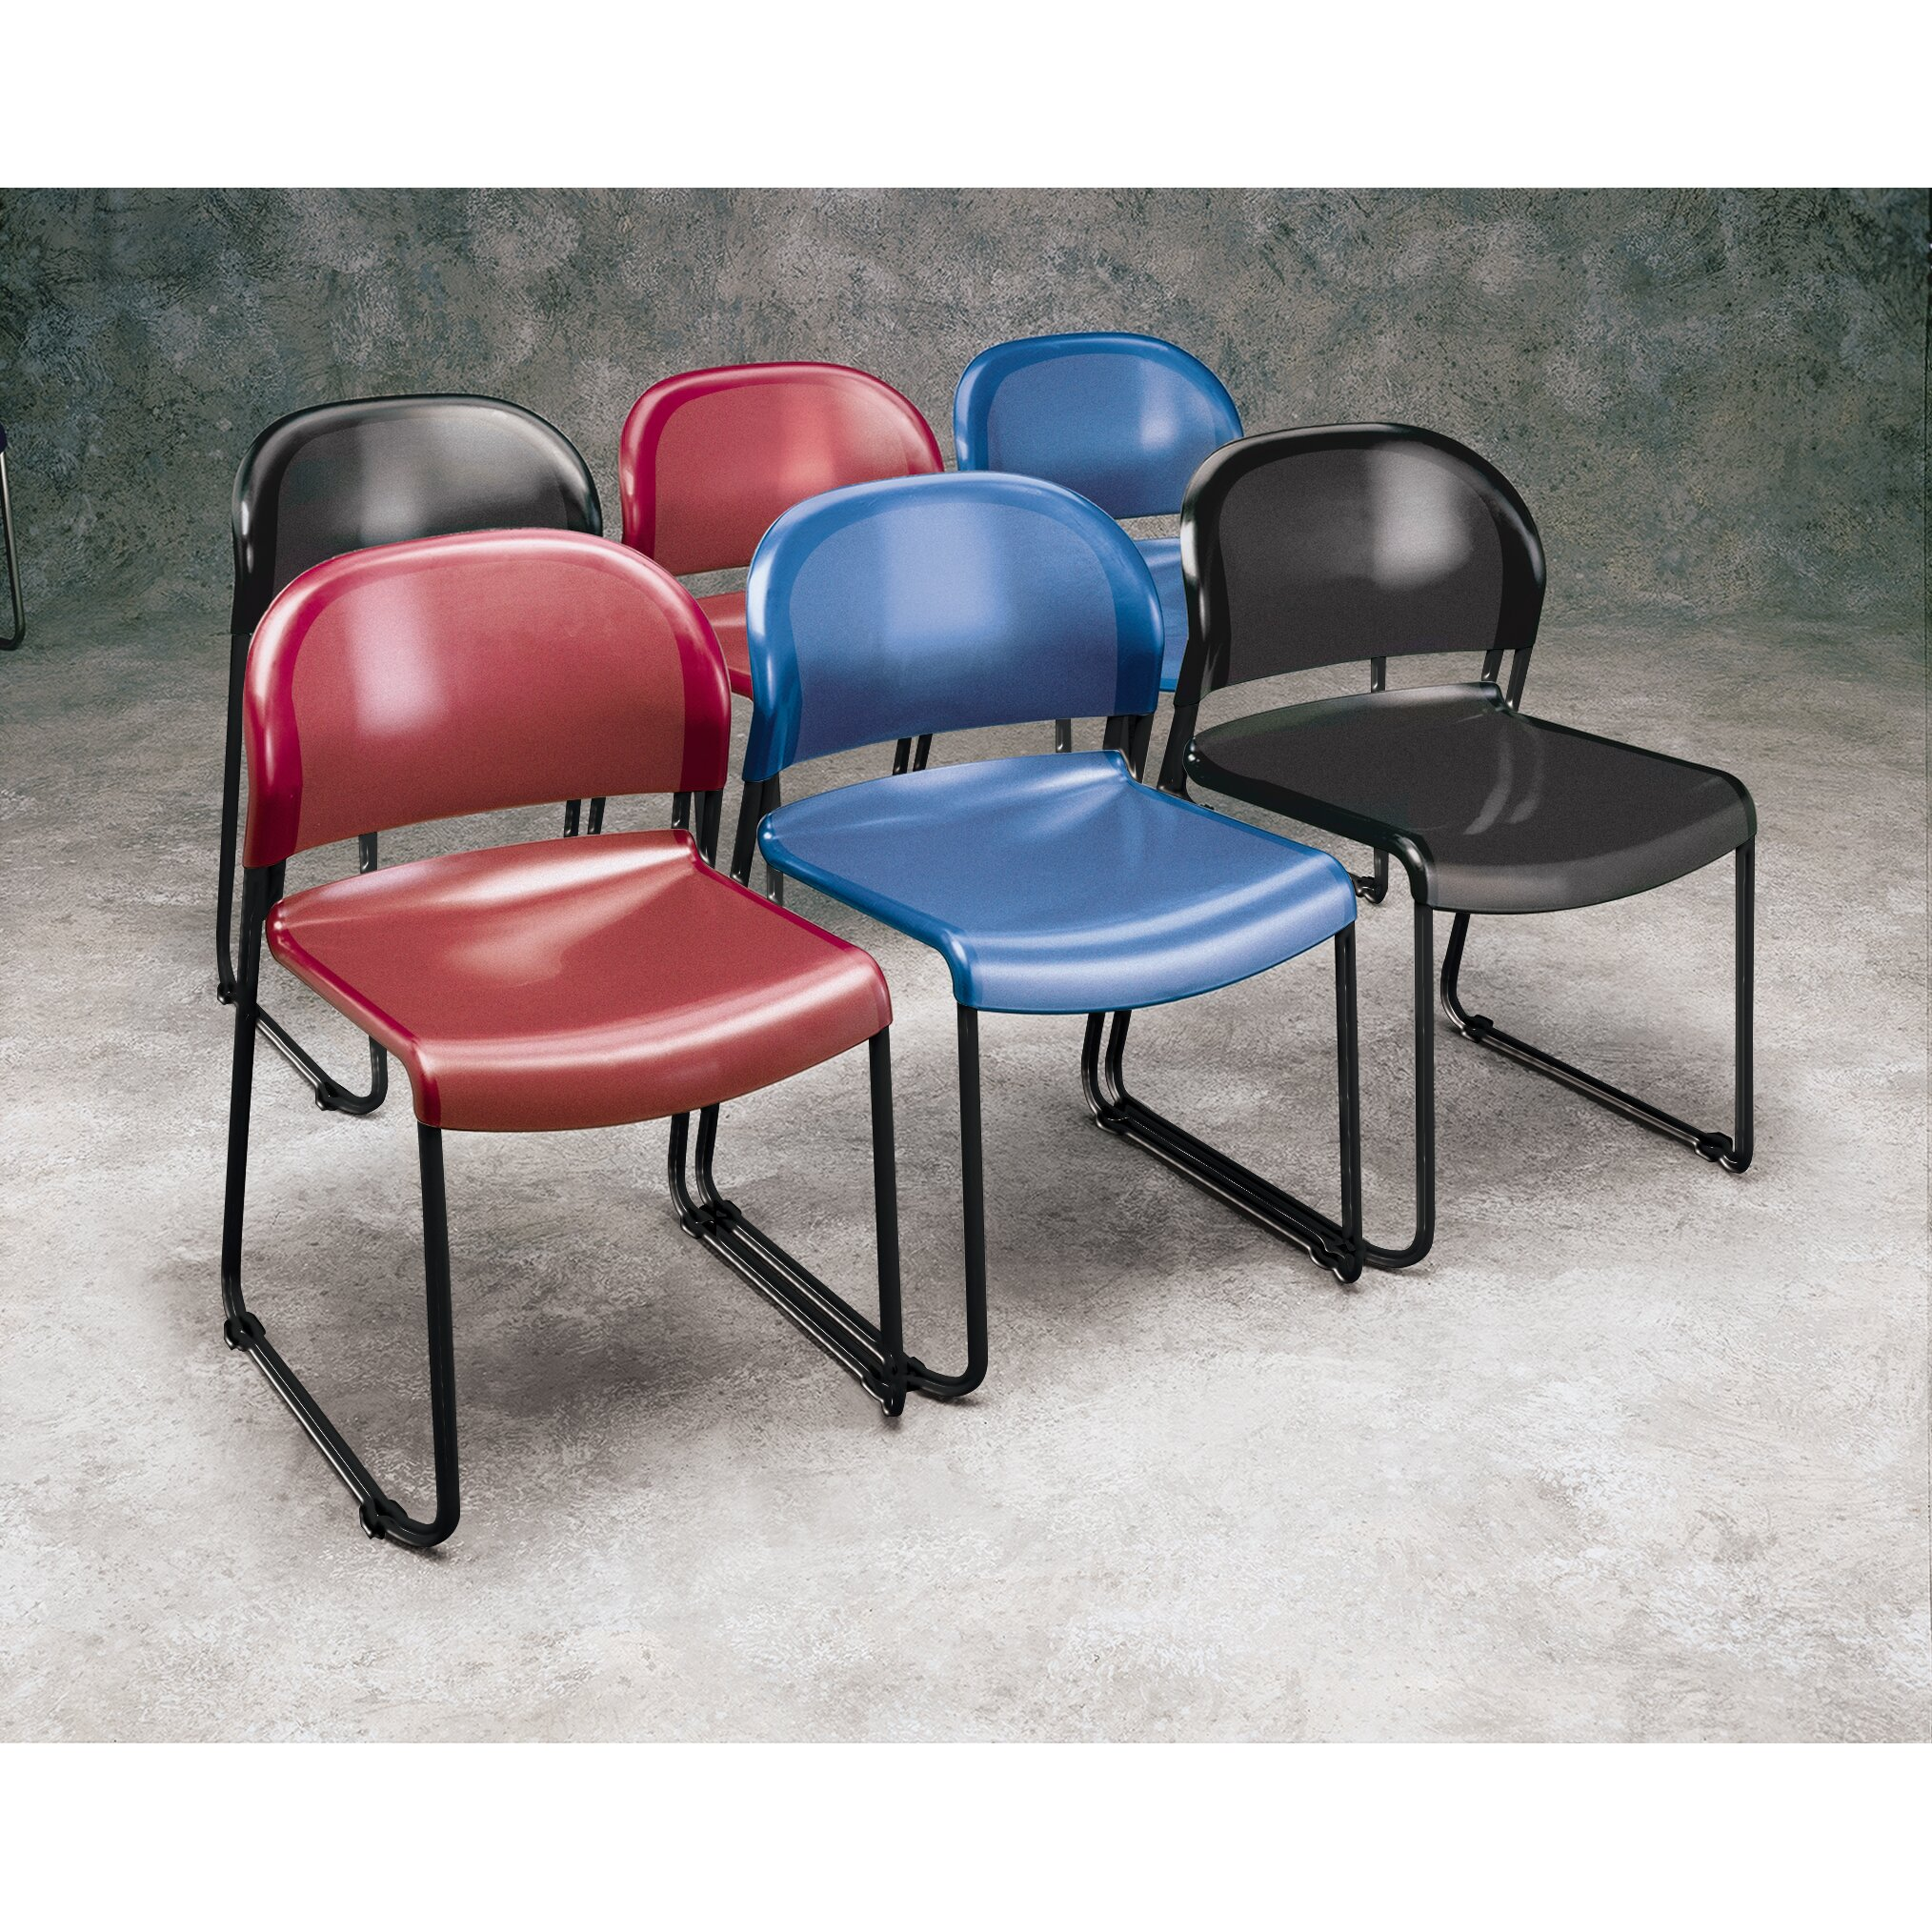 Supply Presentation Event Equipment Stacking Chairs HON SKU HN1448